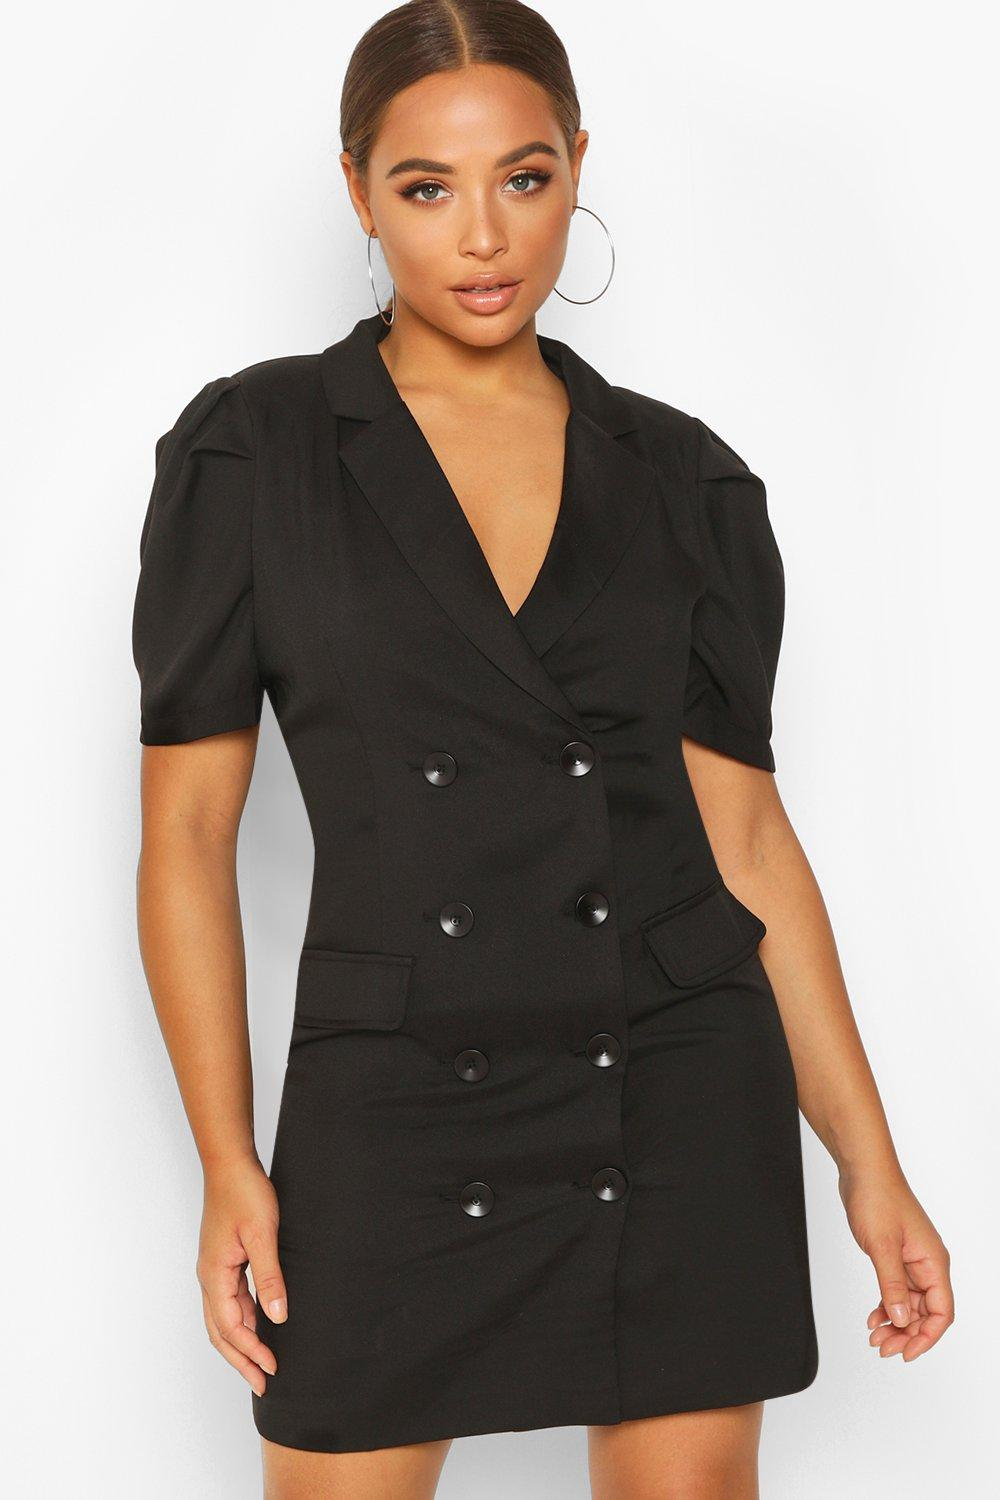 Don't Miss Out Double Breasted Puff Shoulder Blazer Dress